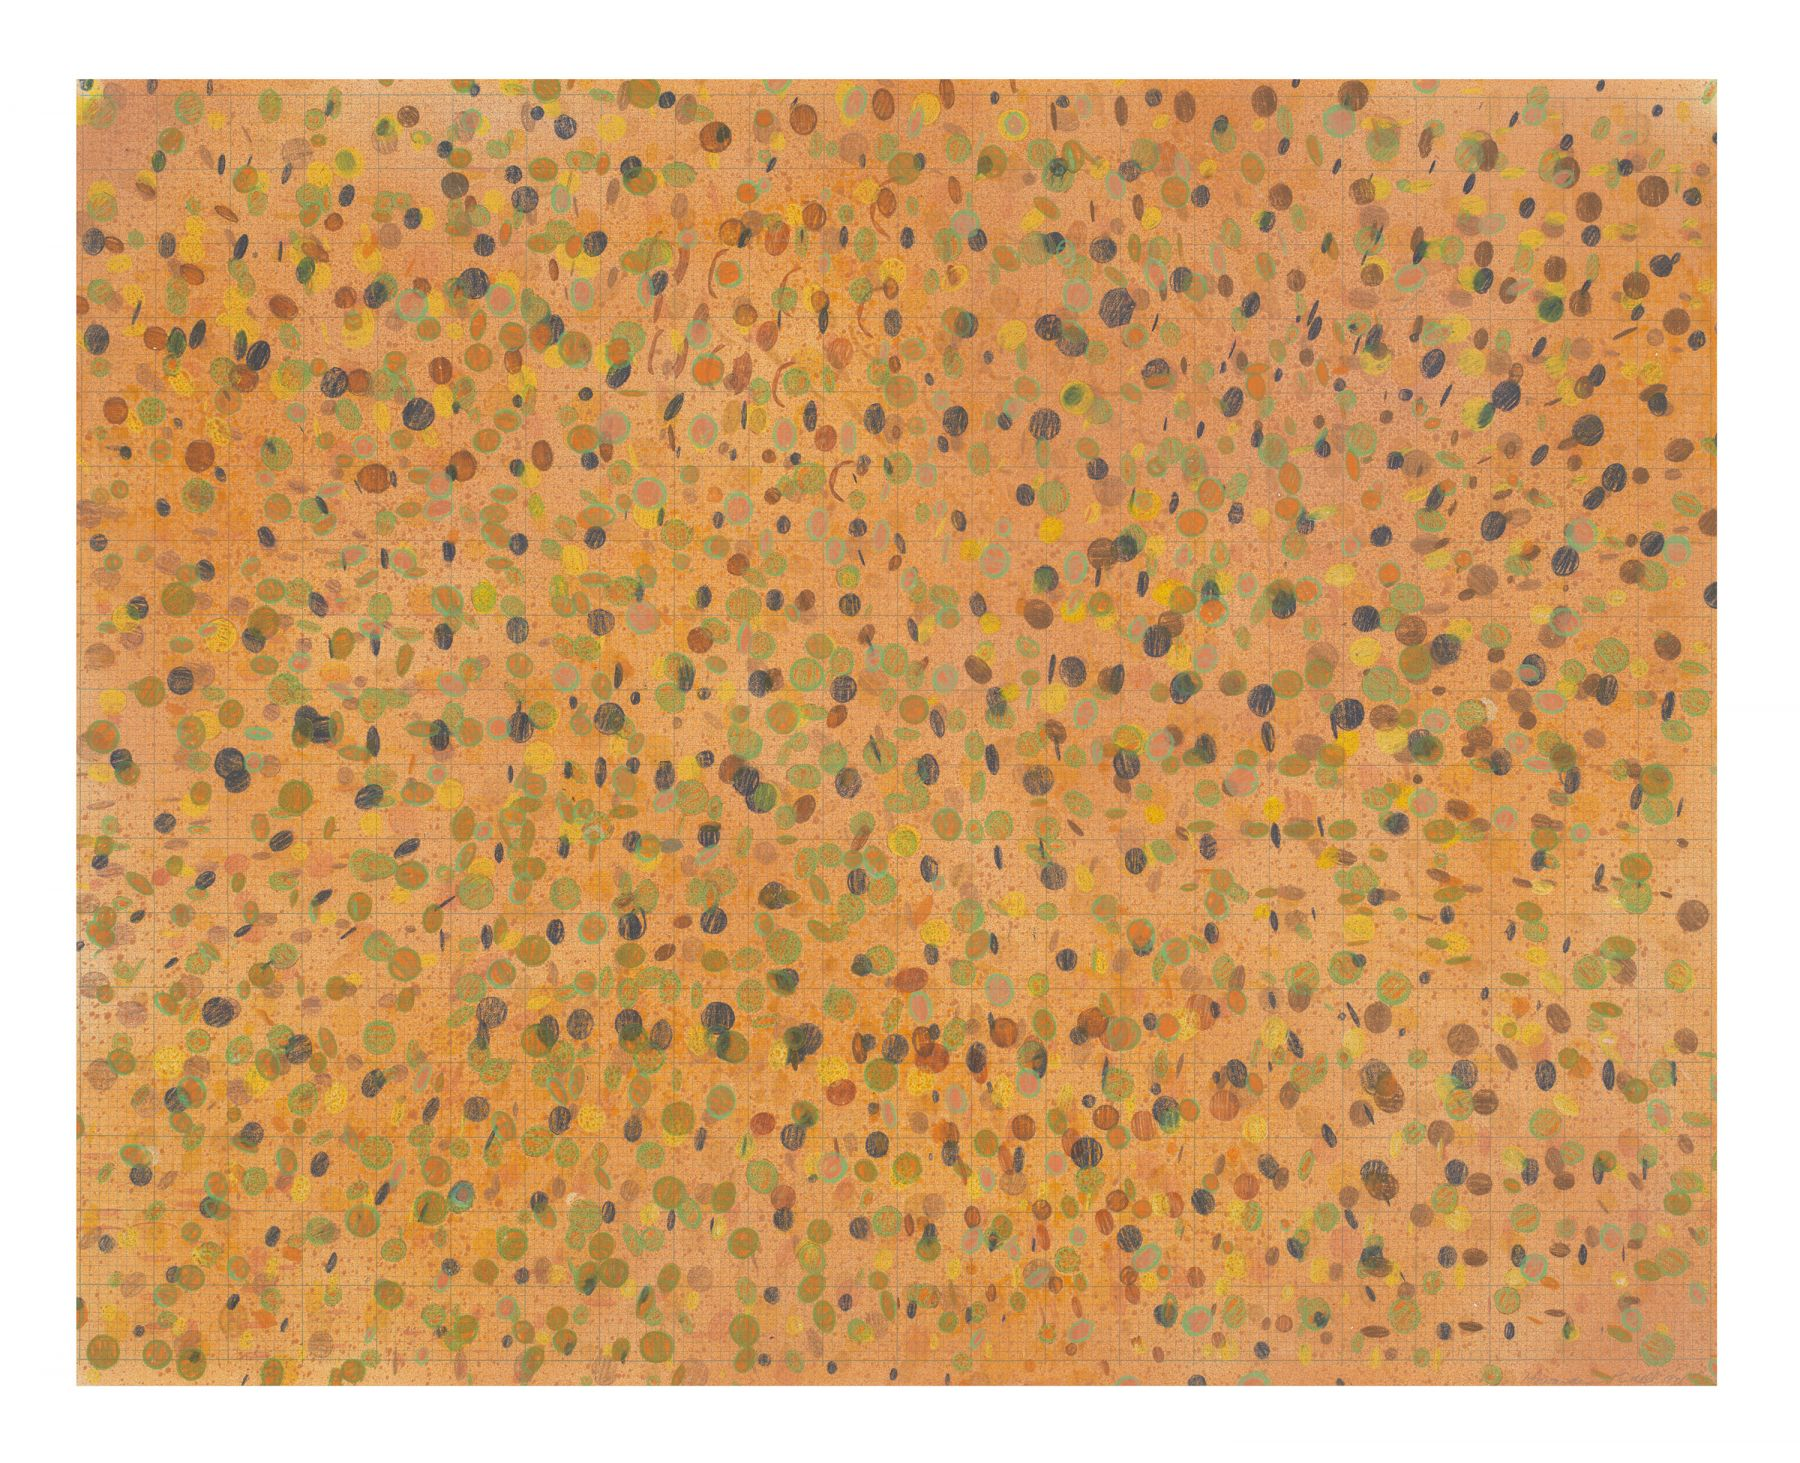 Orange color grid pattern mix media drawing on paper by Howardena Pindell